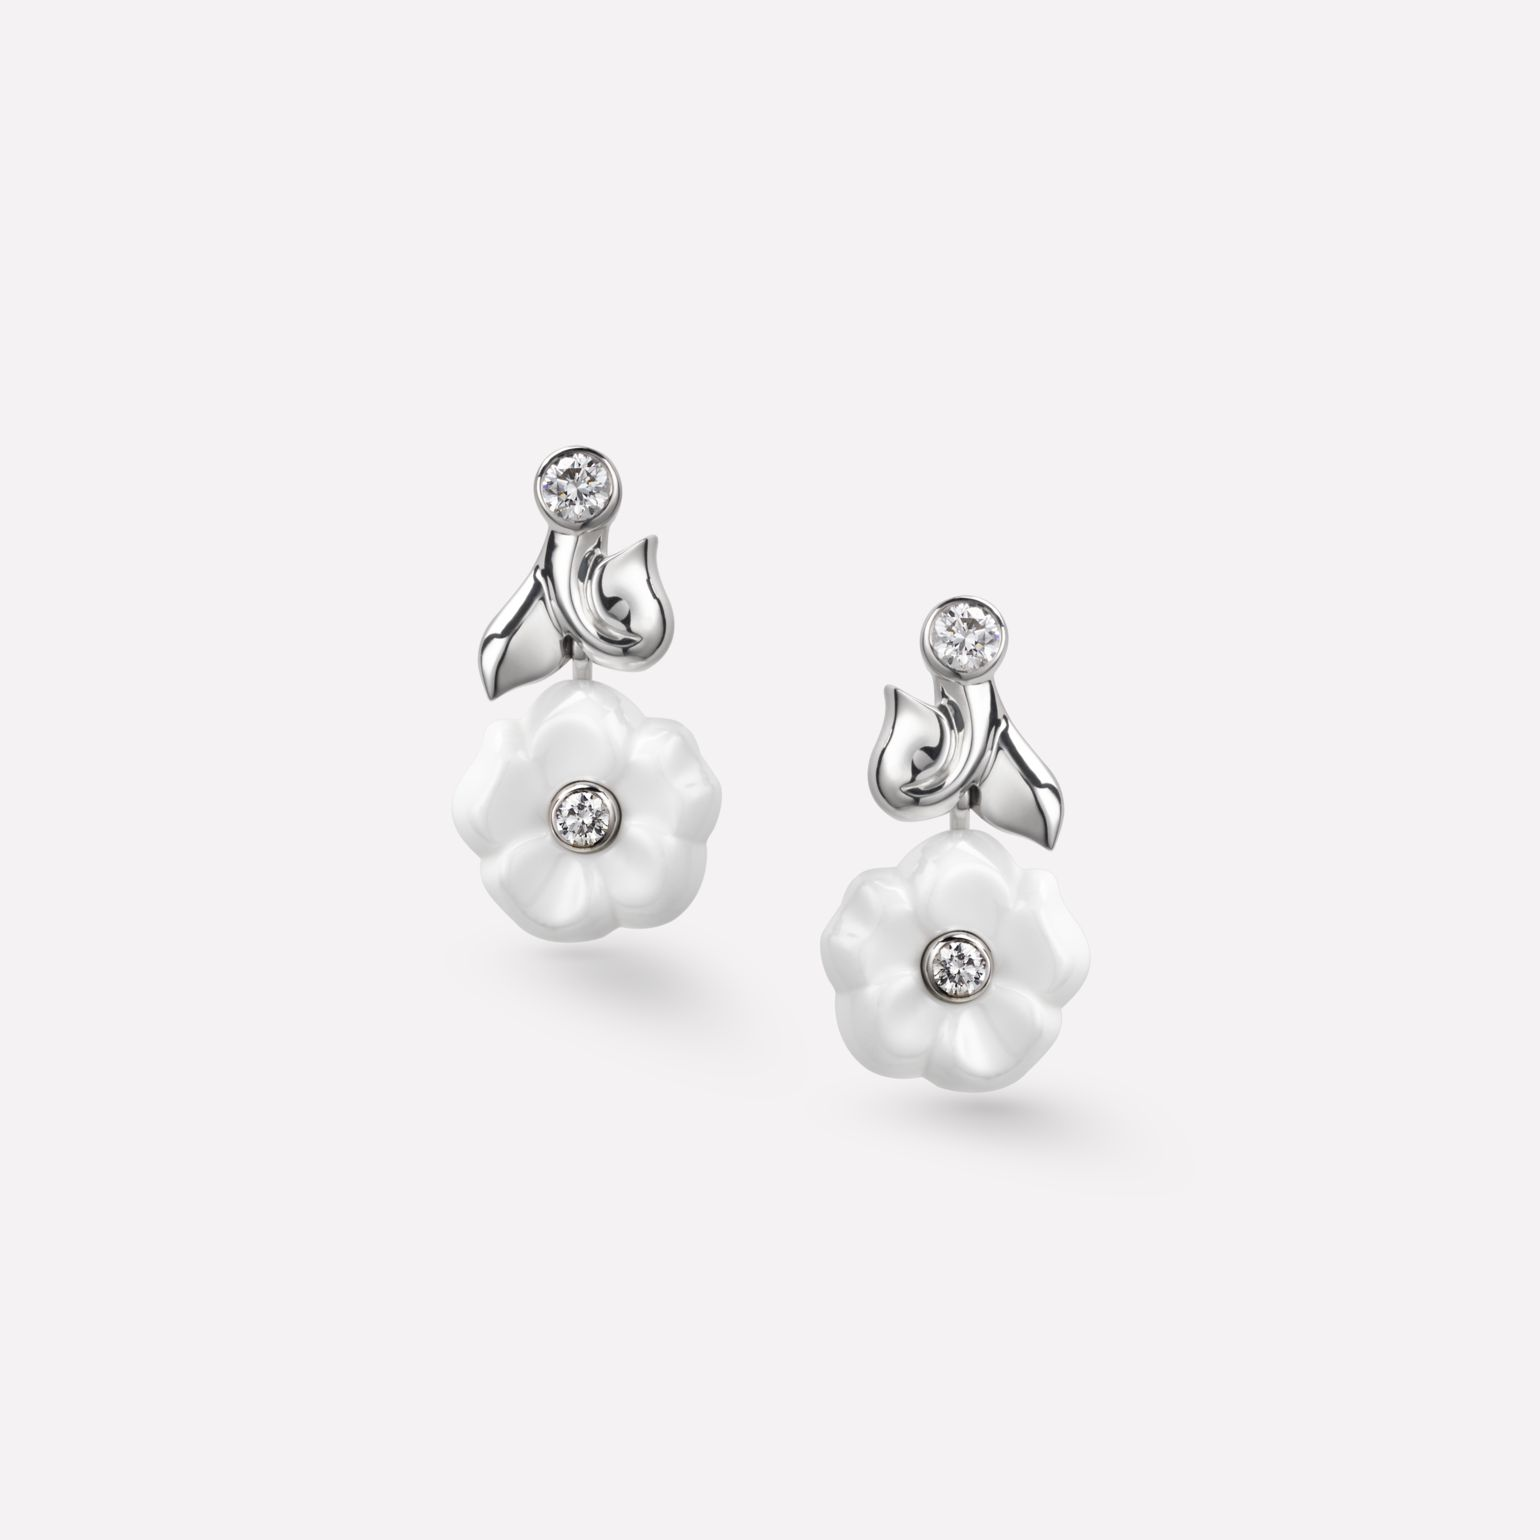 Camélia Earrings Camélia Galbé earrings in white ceramic, 18K white gold and diamonds